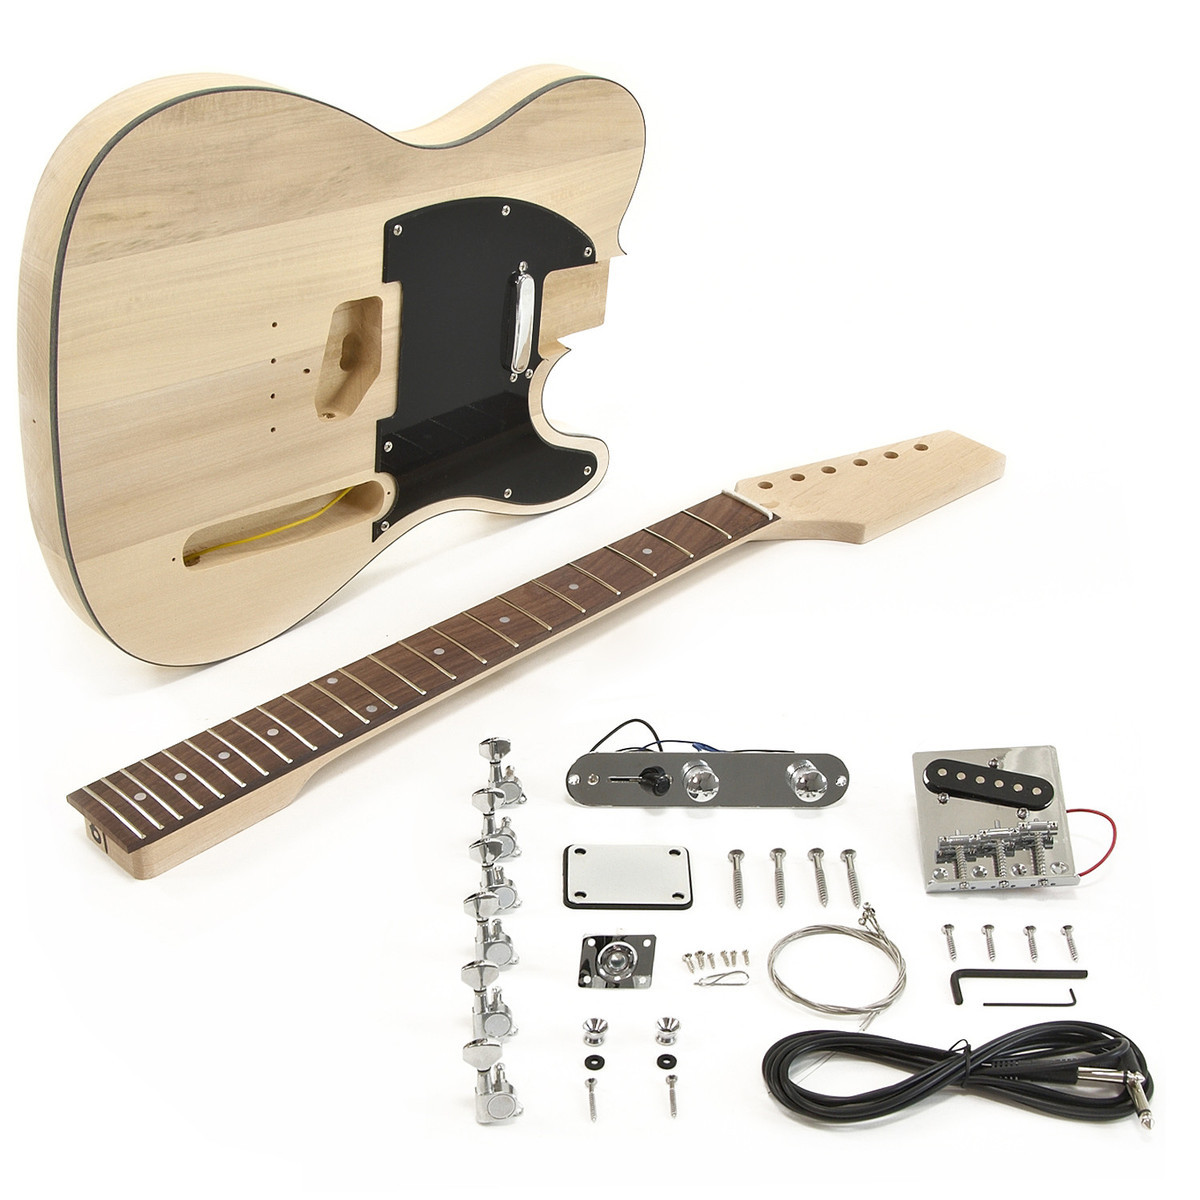 Best ideas about DIY Electric Guitar Kit . Save or Pin Knoxville Electric Guitar DIY Kit at Gear4music Now.